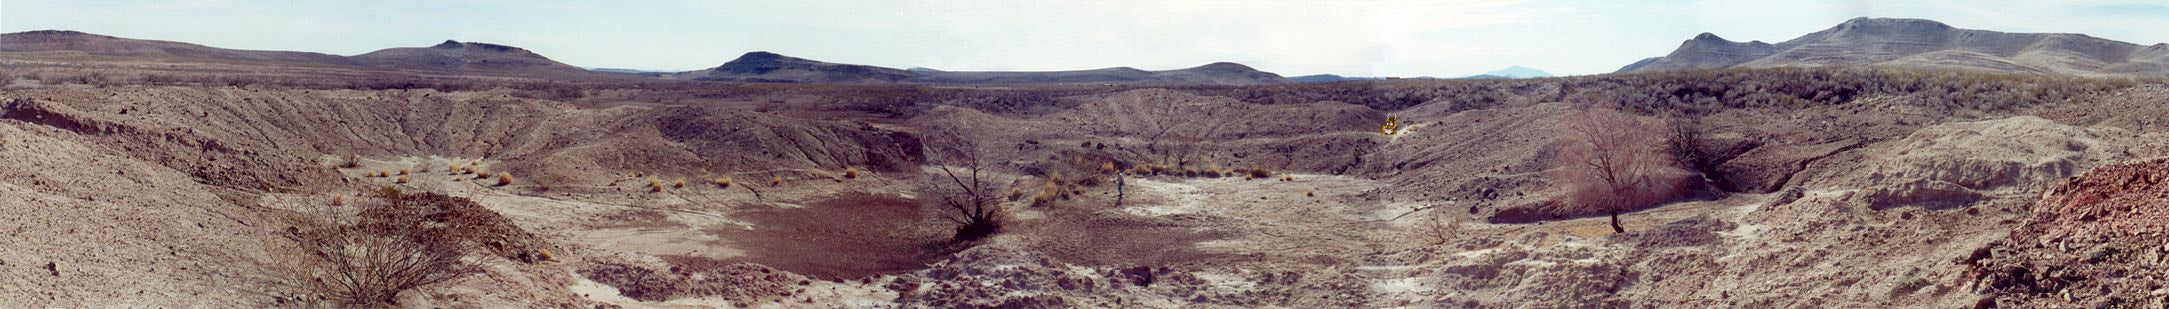 180º view of mining area